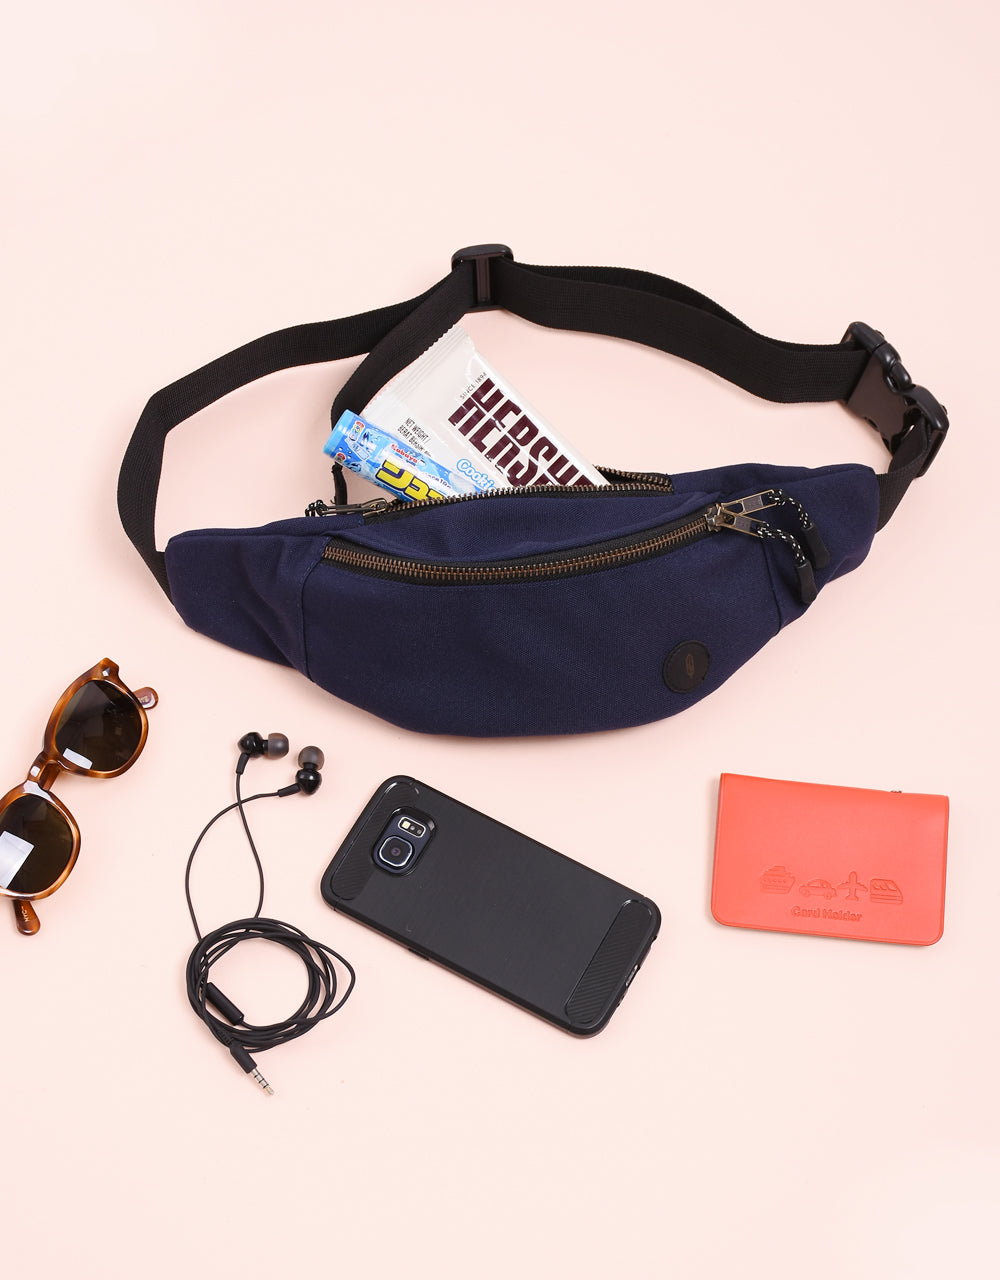 Lecote 2 Waistbag